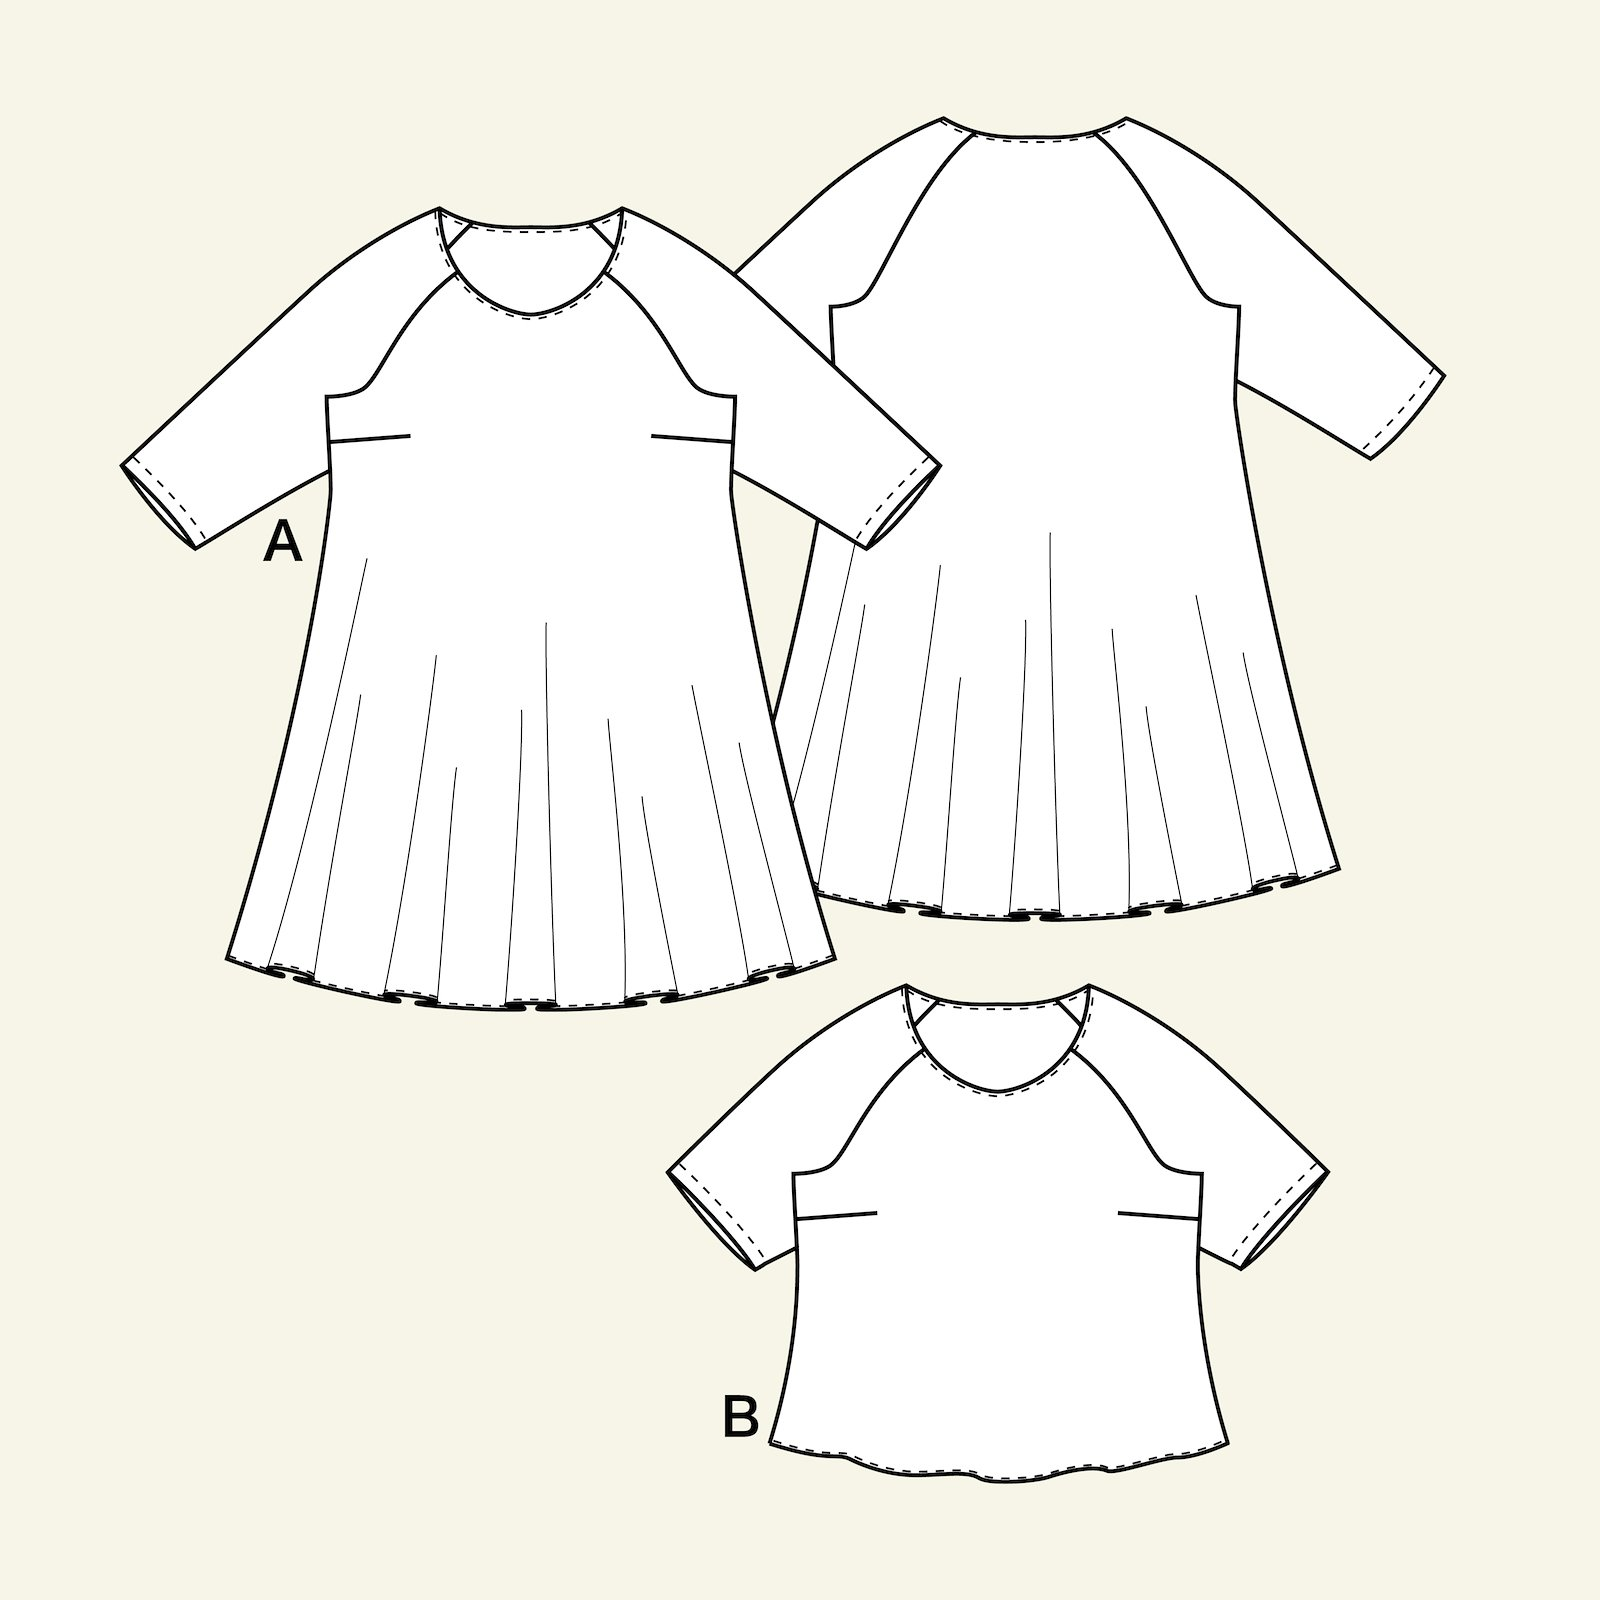 Dress and blouse, 50/22 p73013_pack